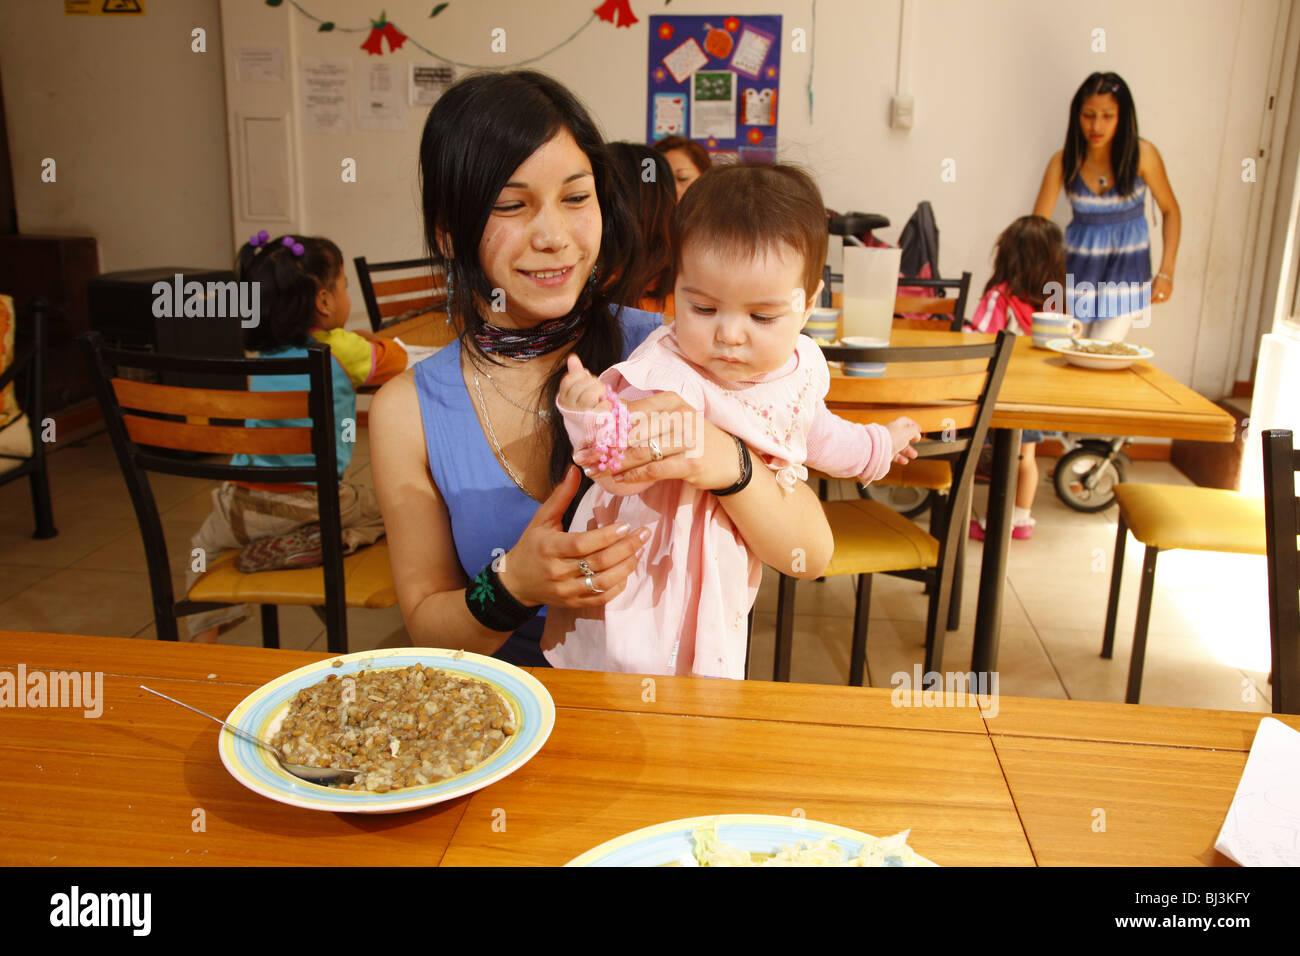 Underage single mother, women's refuge, Santiago de Chile, Chile, South America - Stock Image